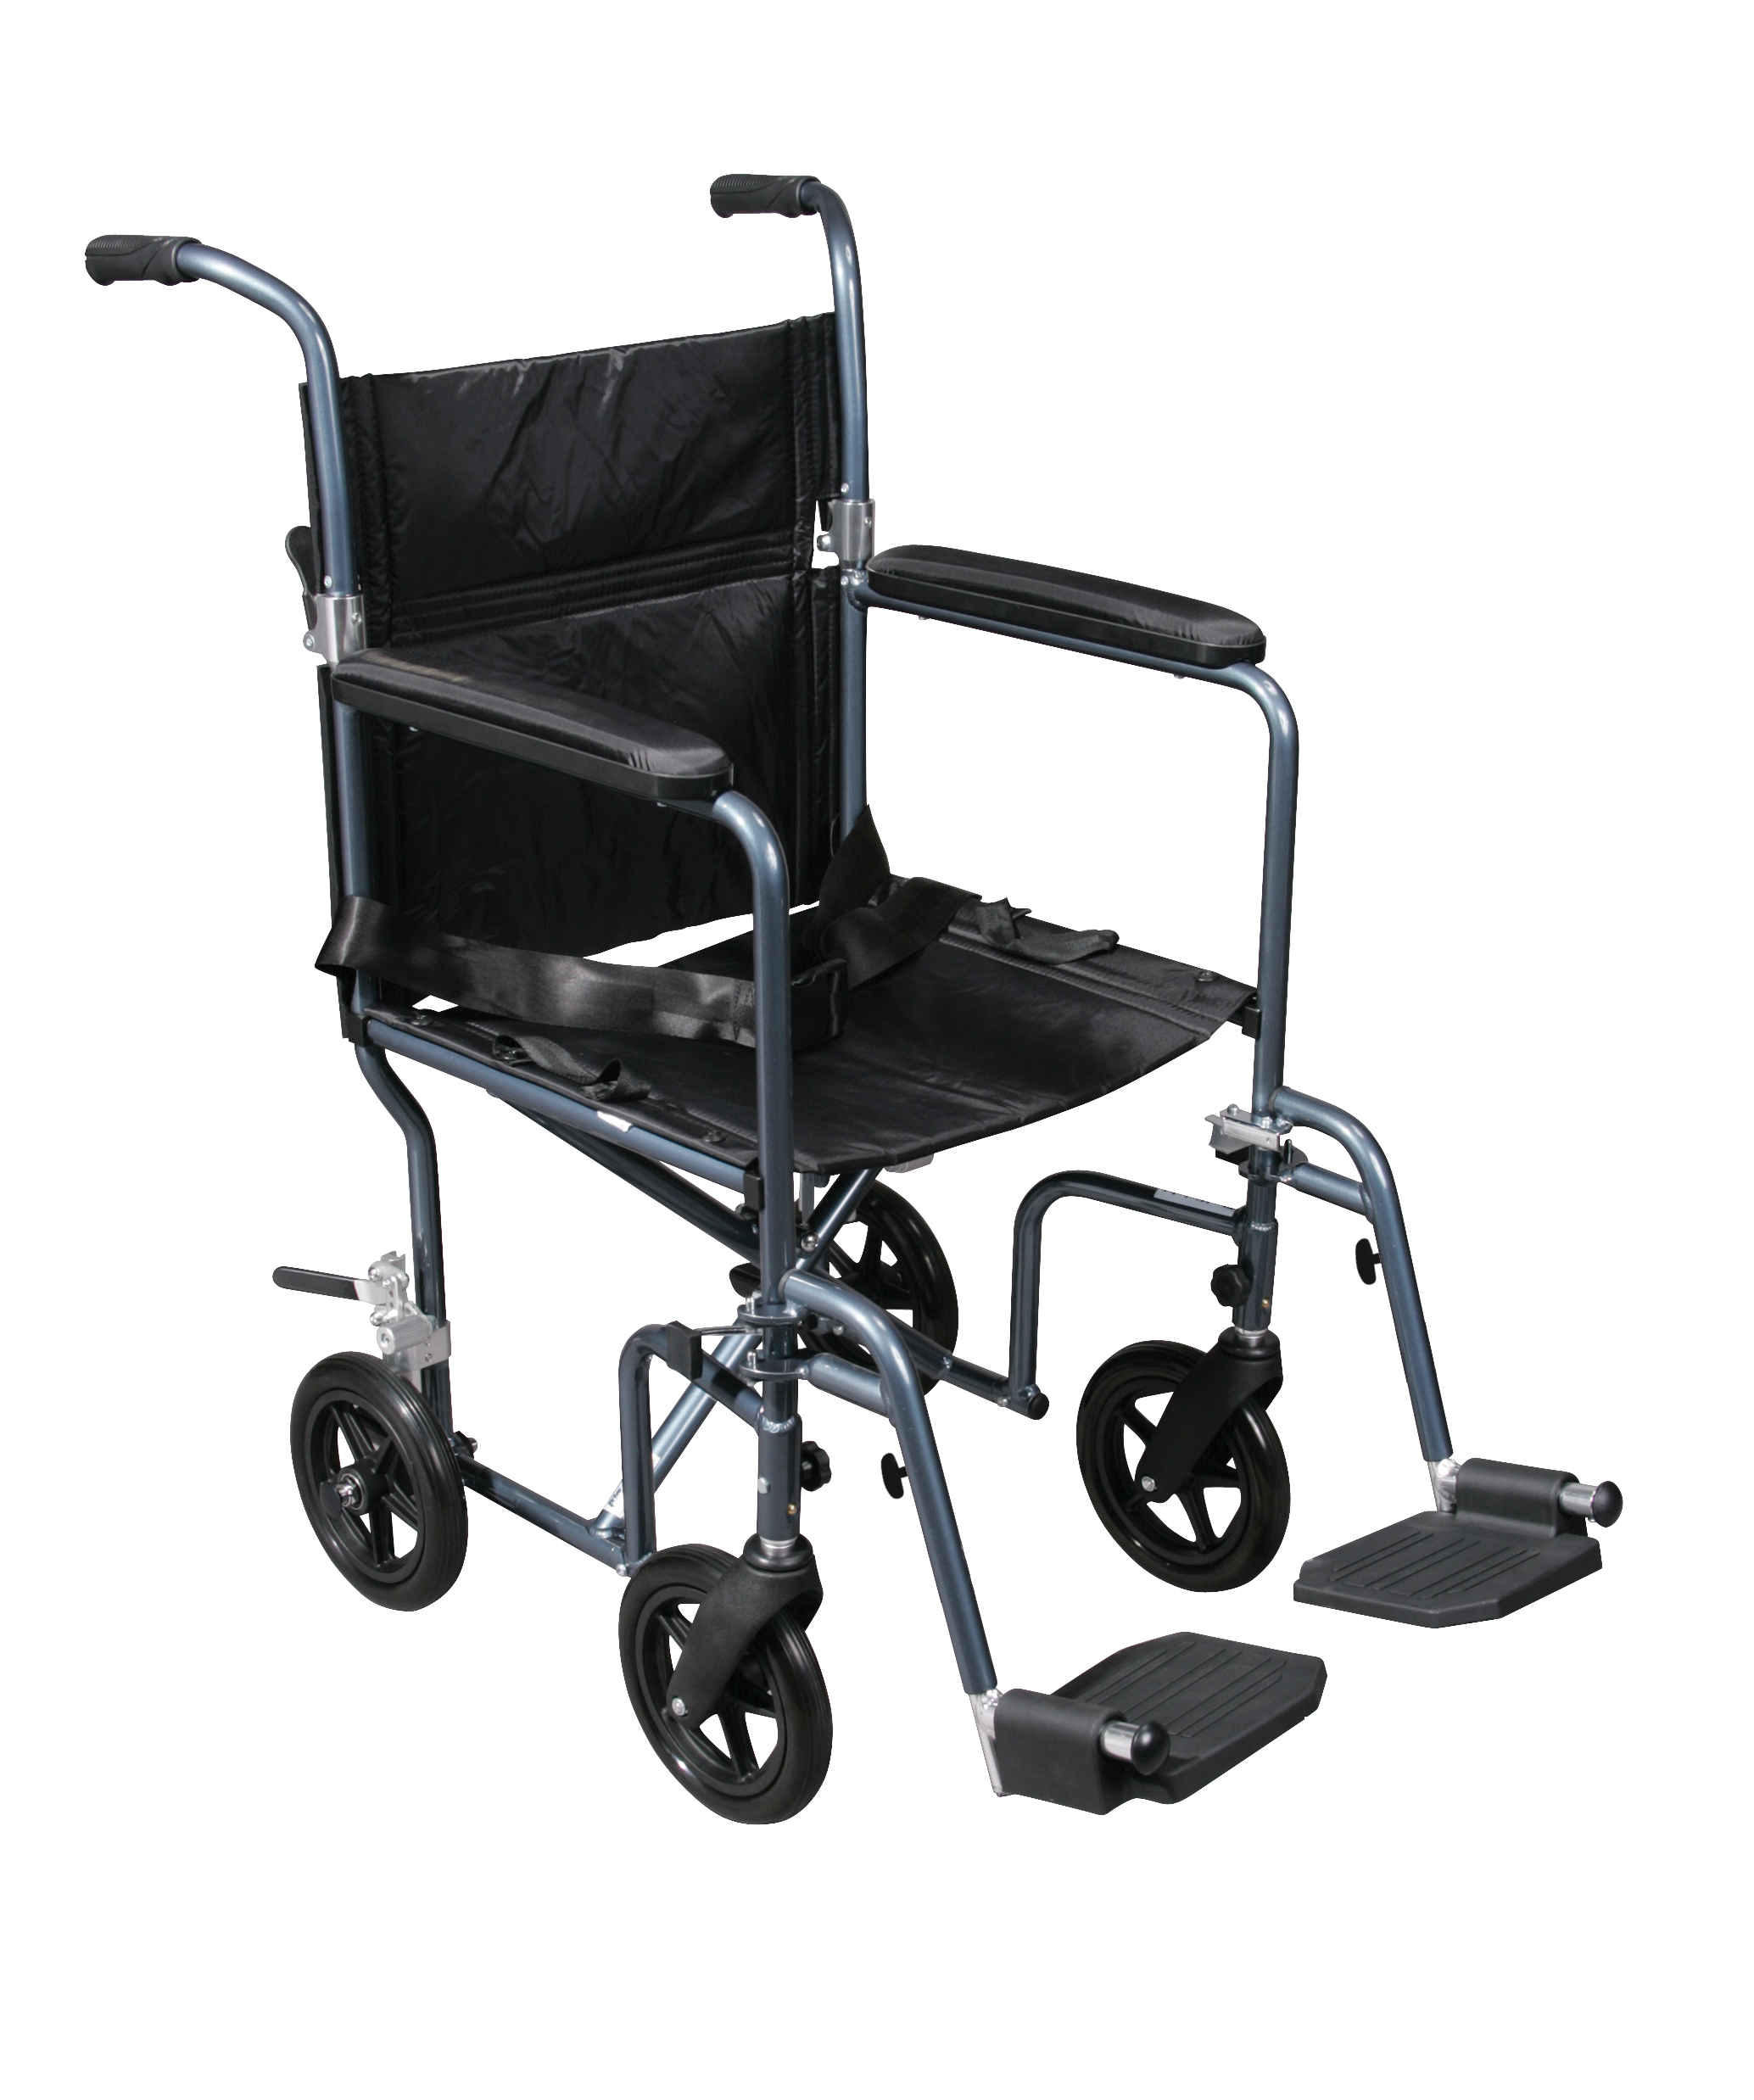 Transport Chairs Drive Flyweight Lightweight Transport Wheelchair With